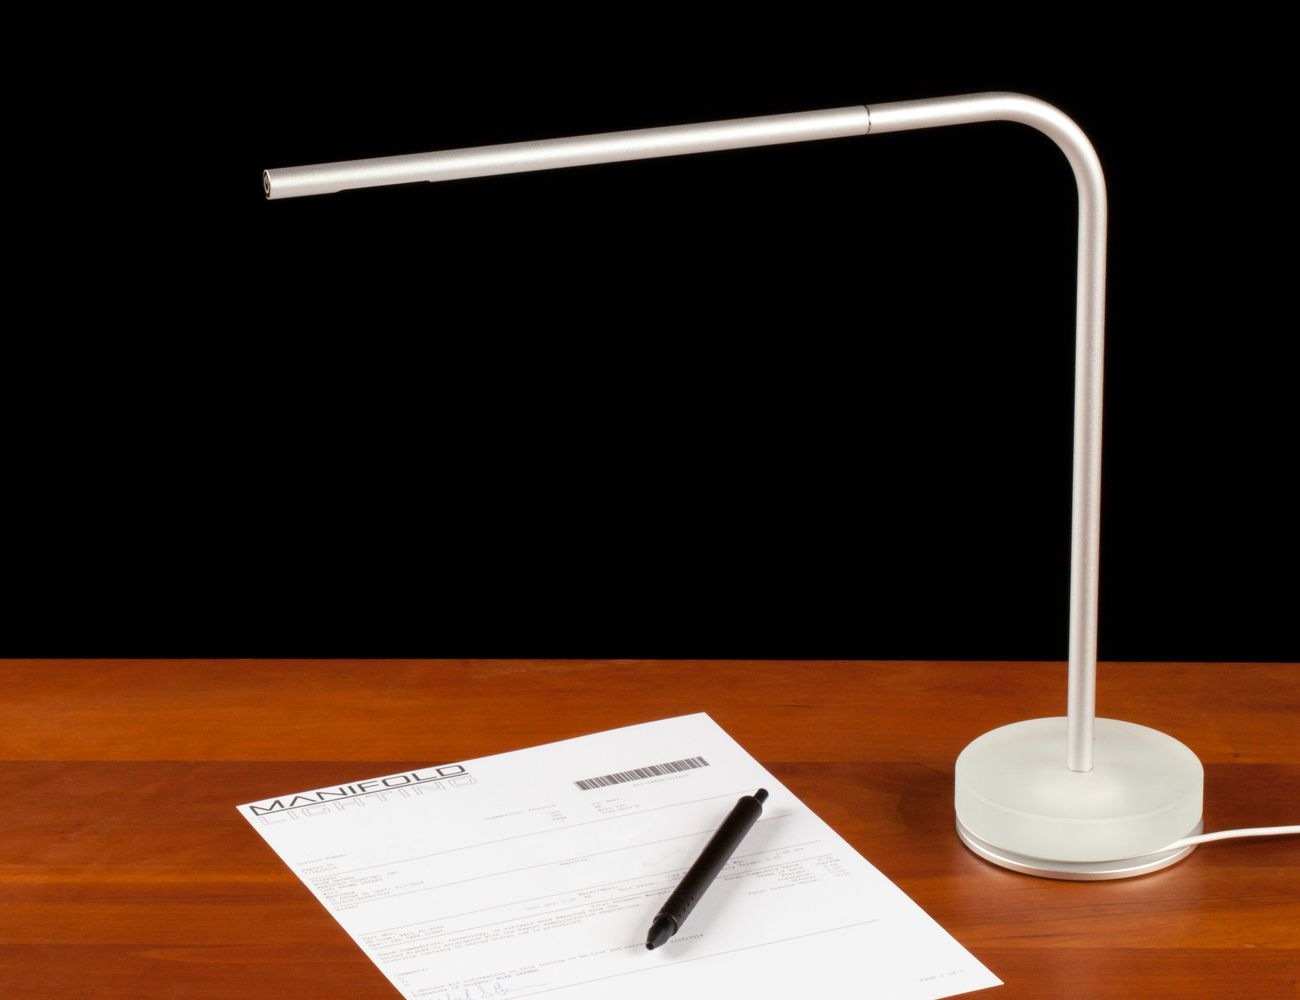 Manifold Piccolo USB Desk Lamp